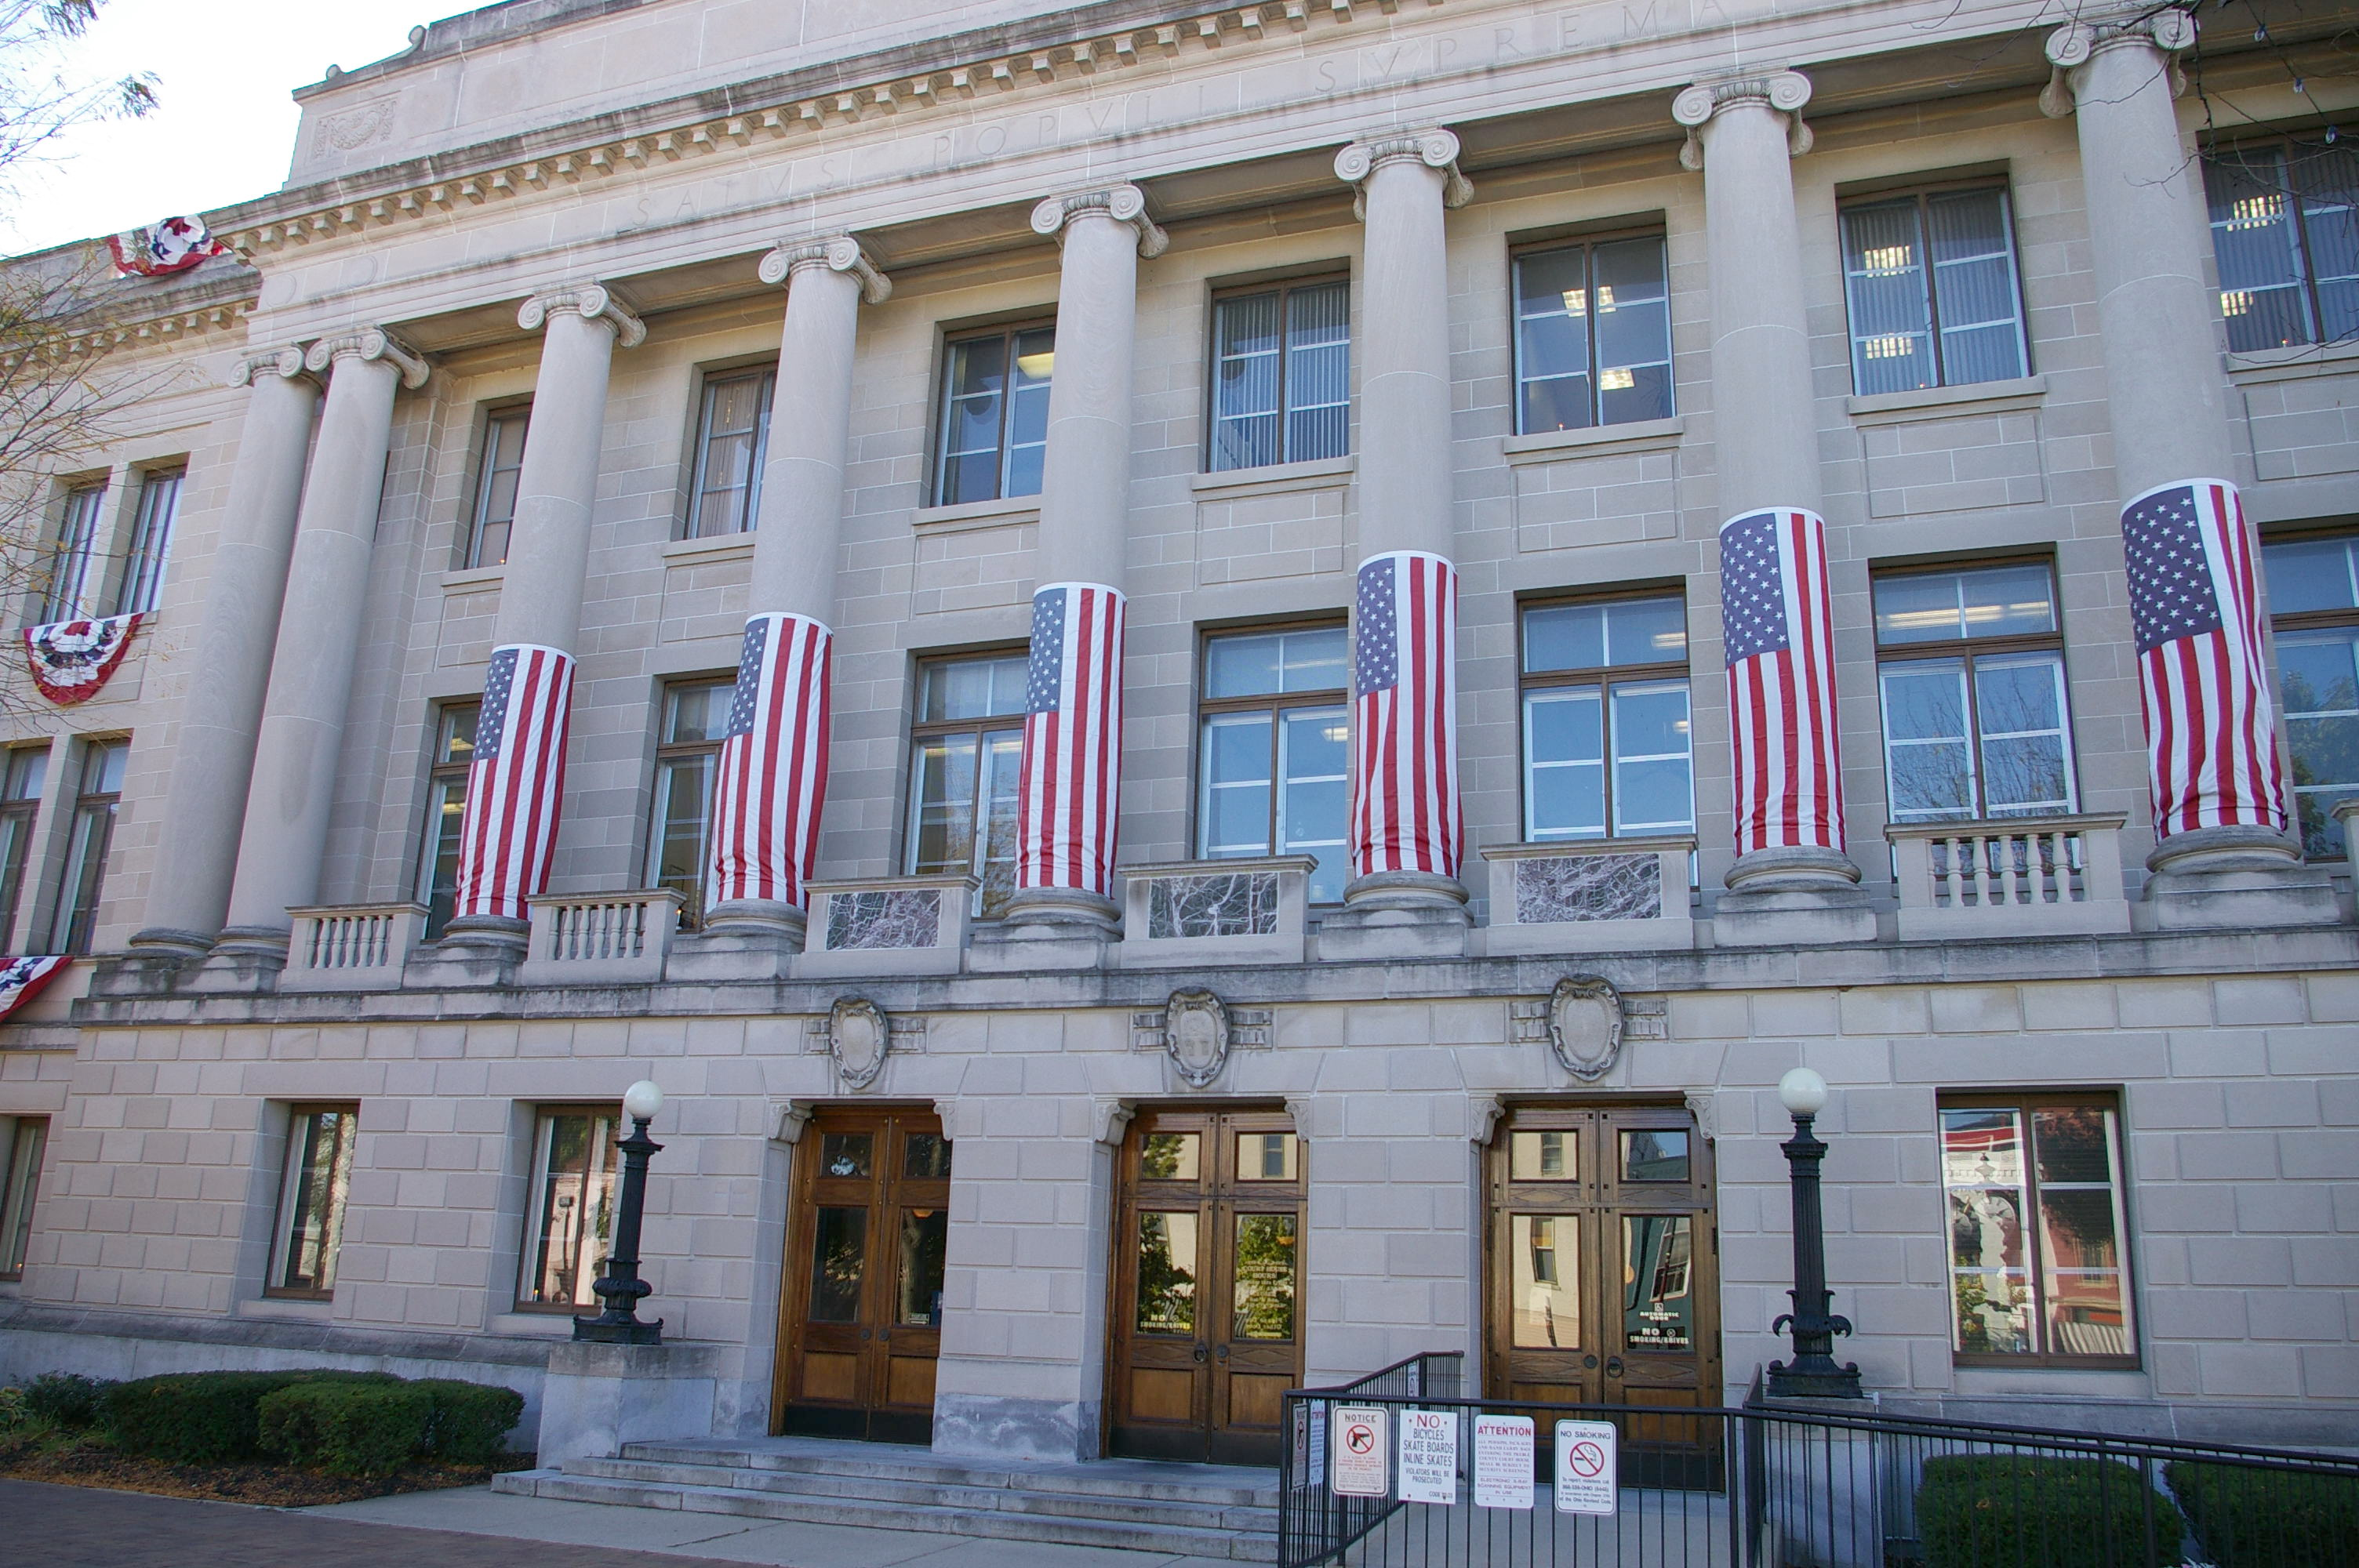 Preble County Us Courthouses